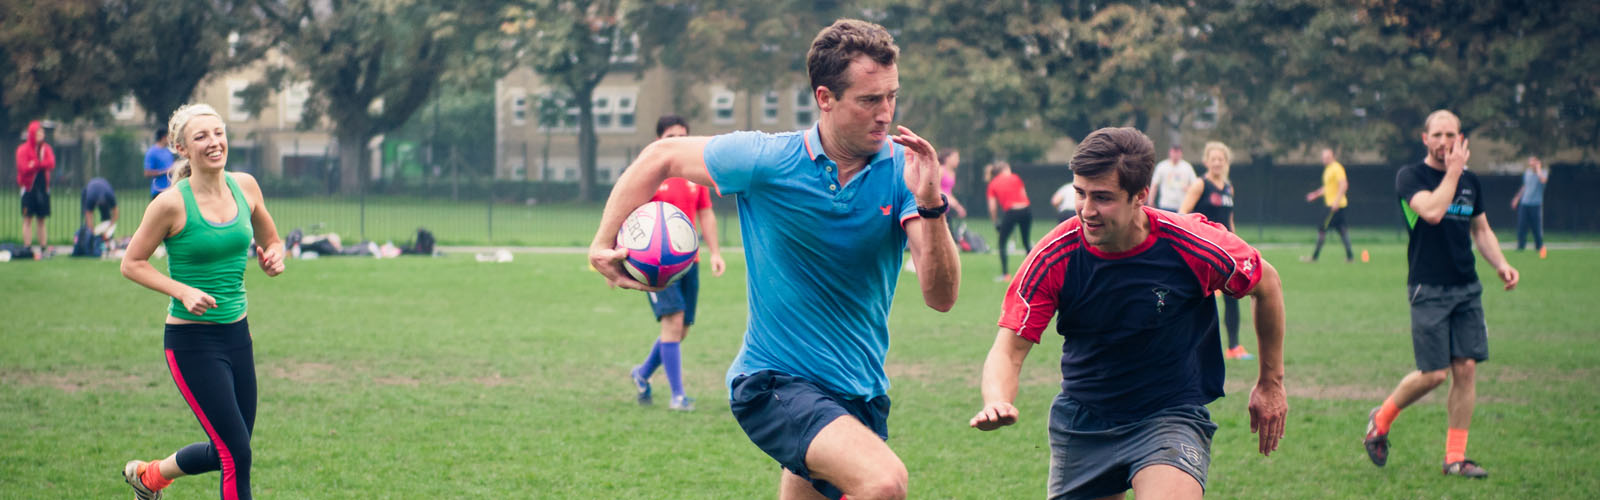 touch rugby leagues london